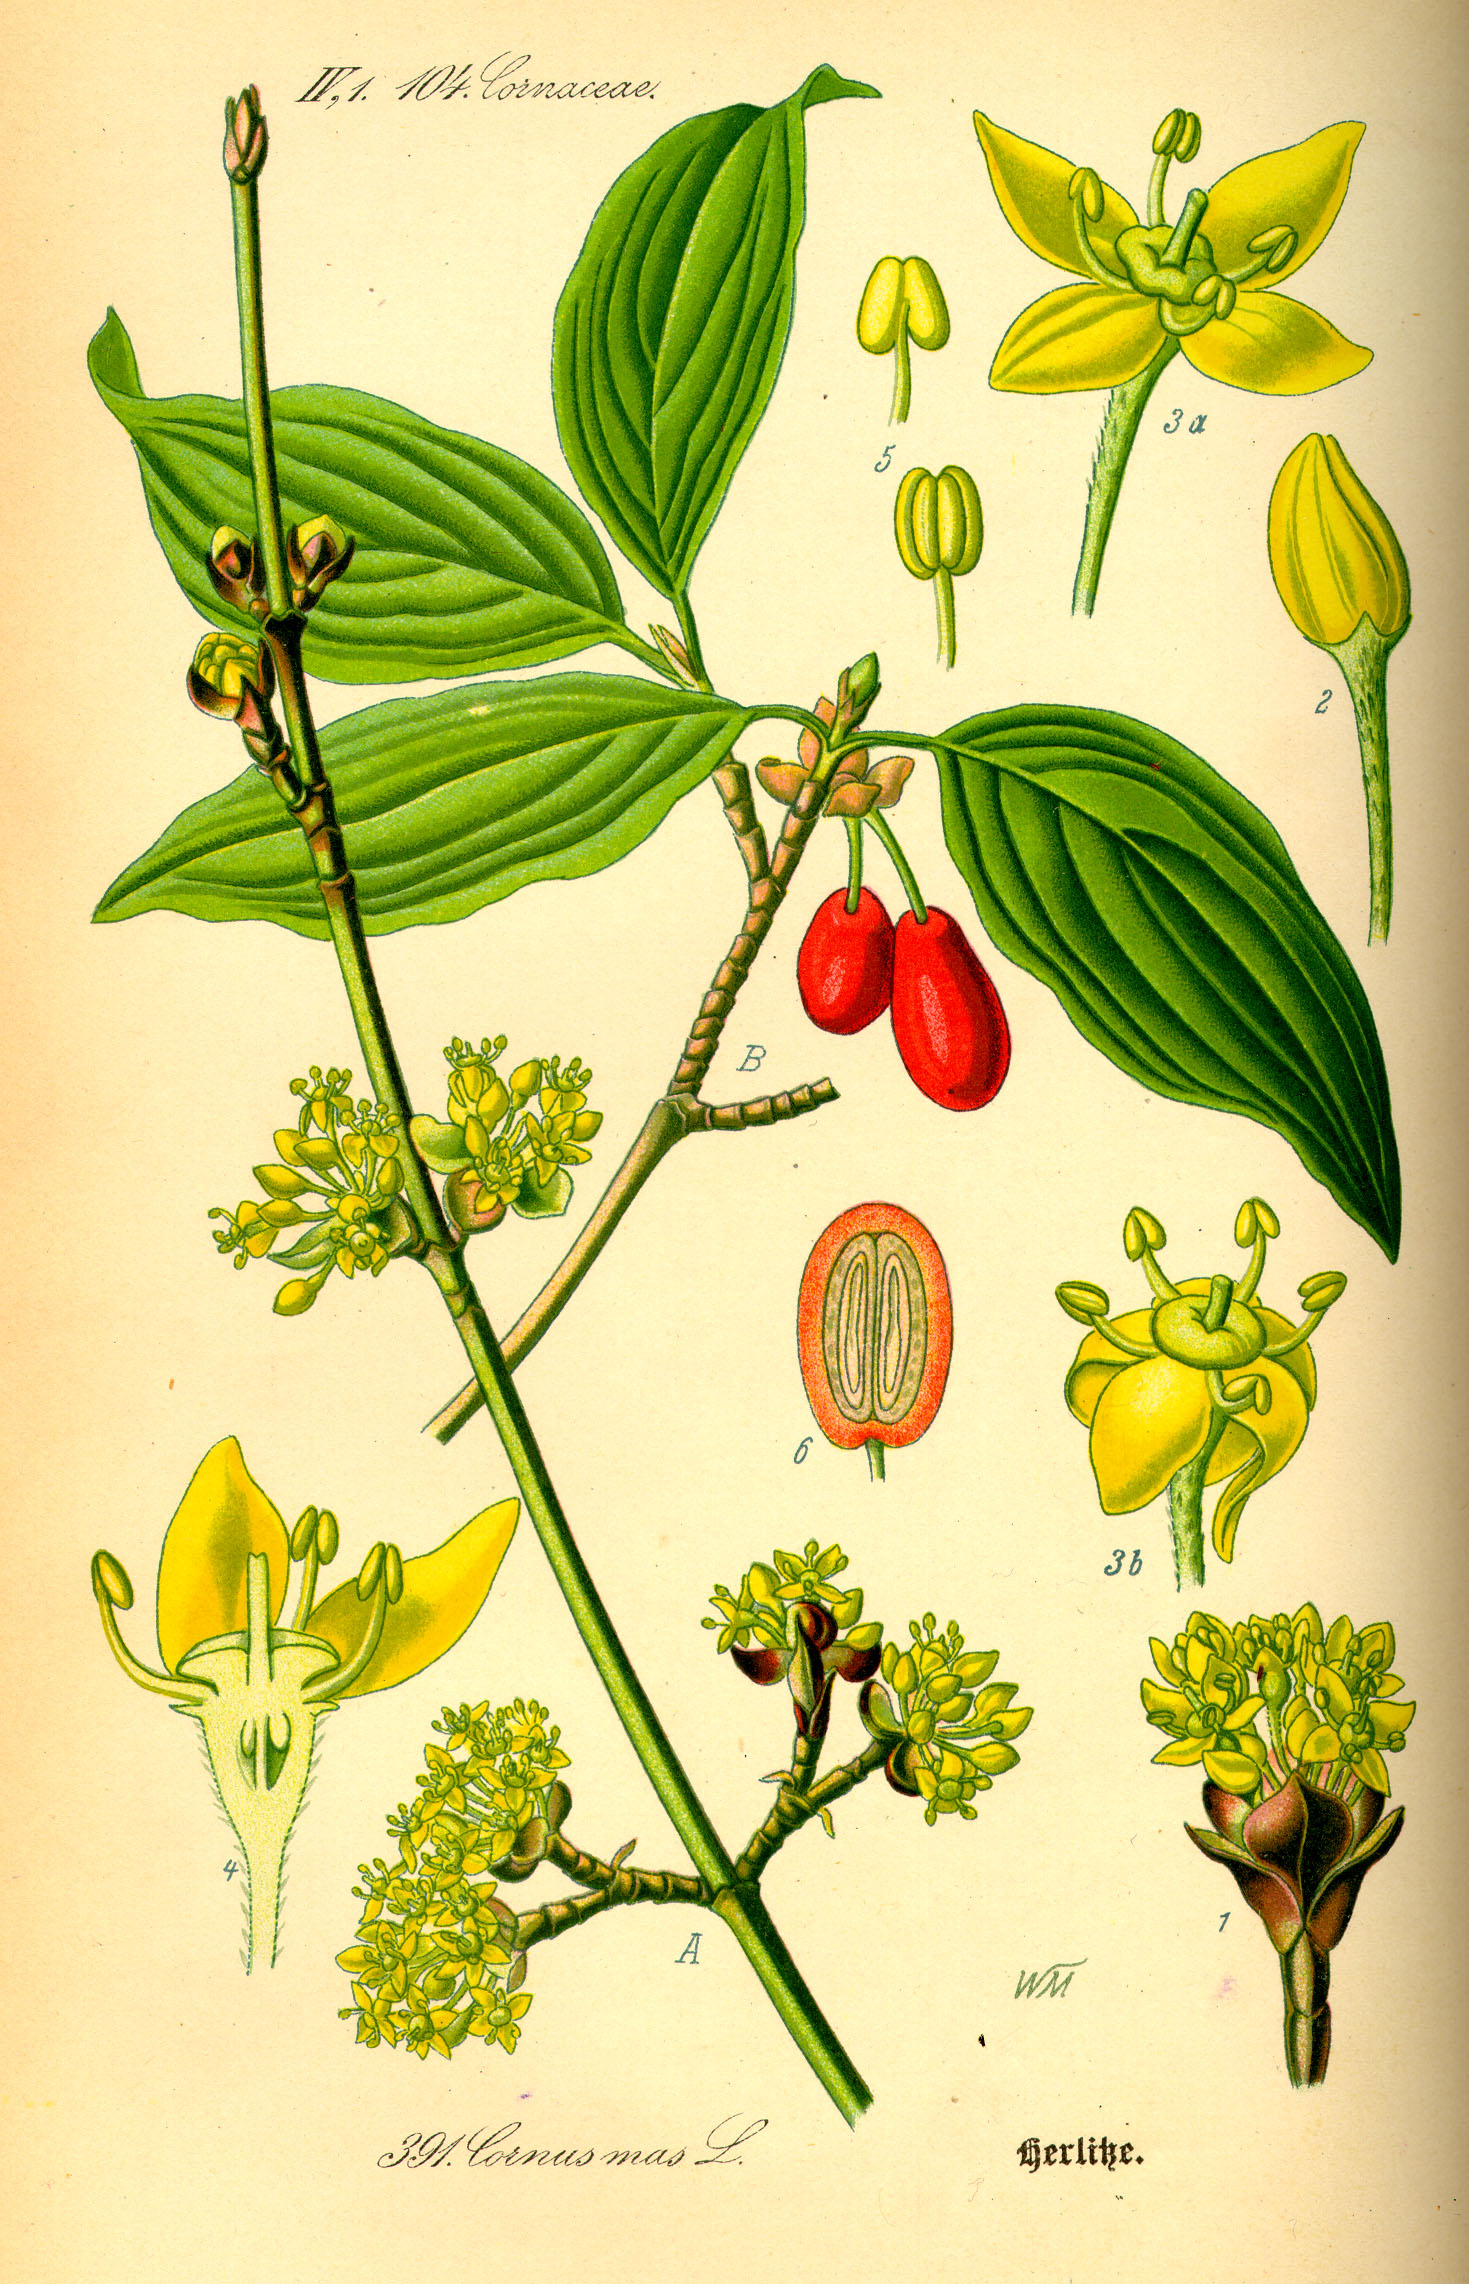 http://wildekraeuterey.de/images/Illustration_Cornus_mas0.jpg